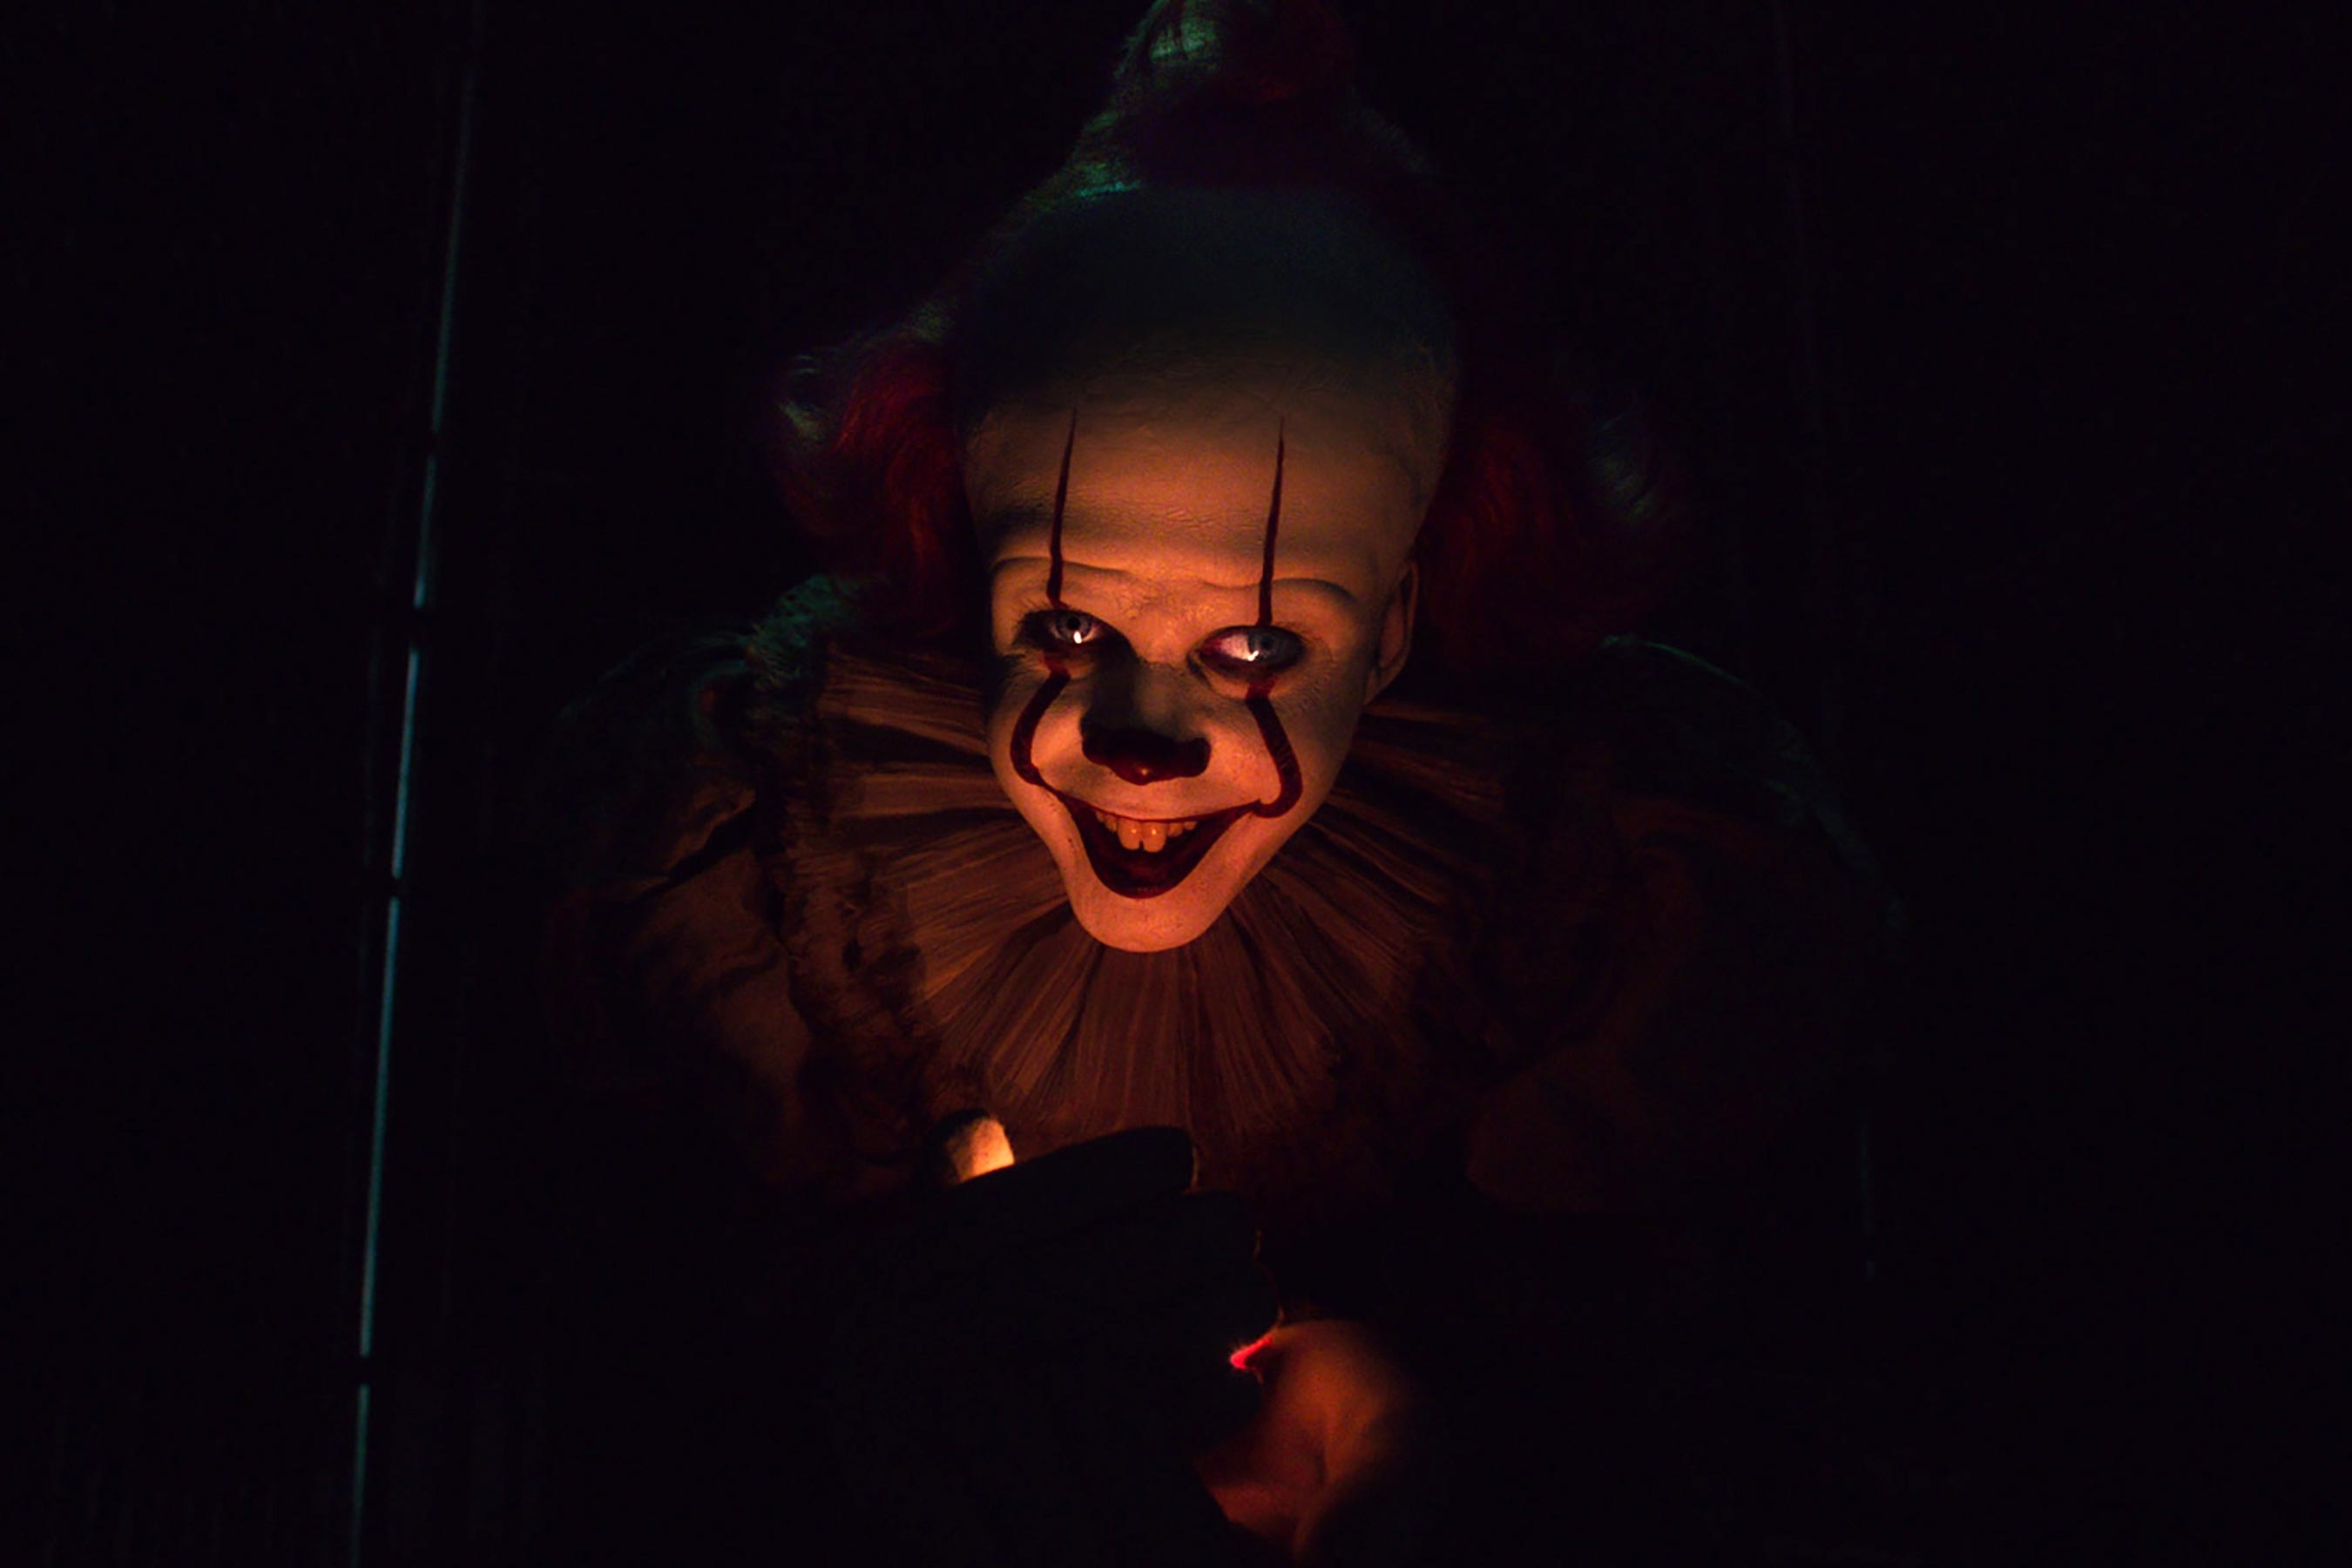 Pennywise In It Chapter Two Wallpaper Hd Movies 4k Wallpapers Images Photos And Background